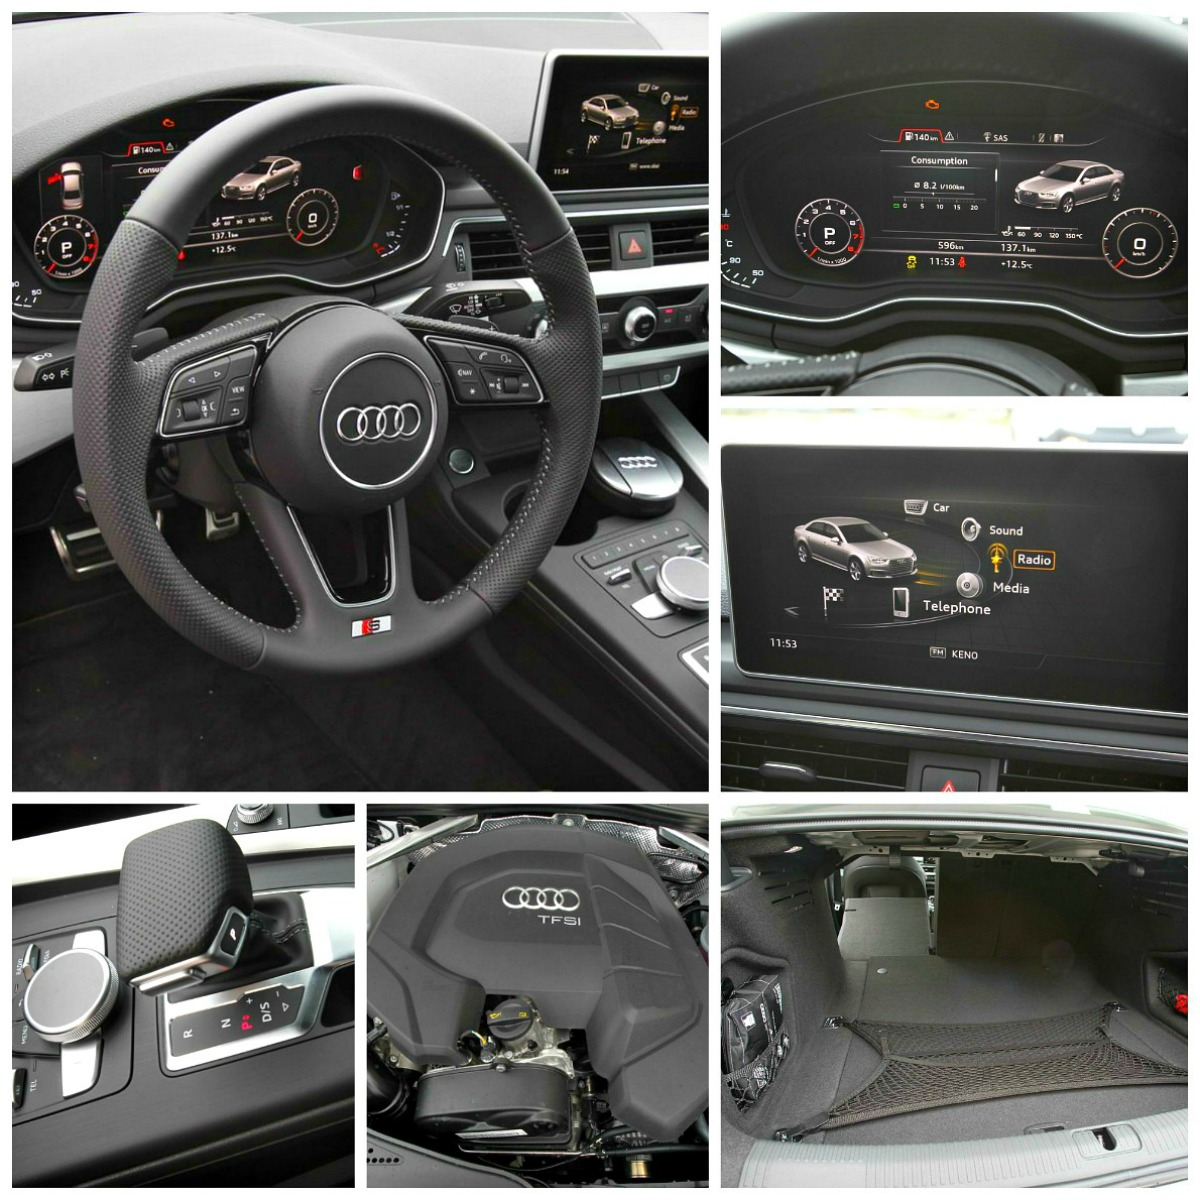 Audi A4 collage